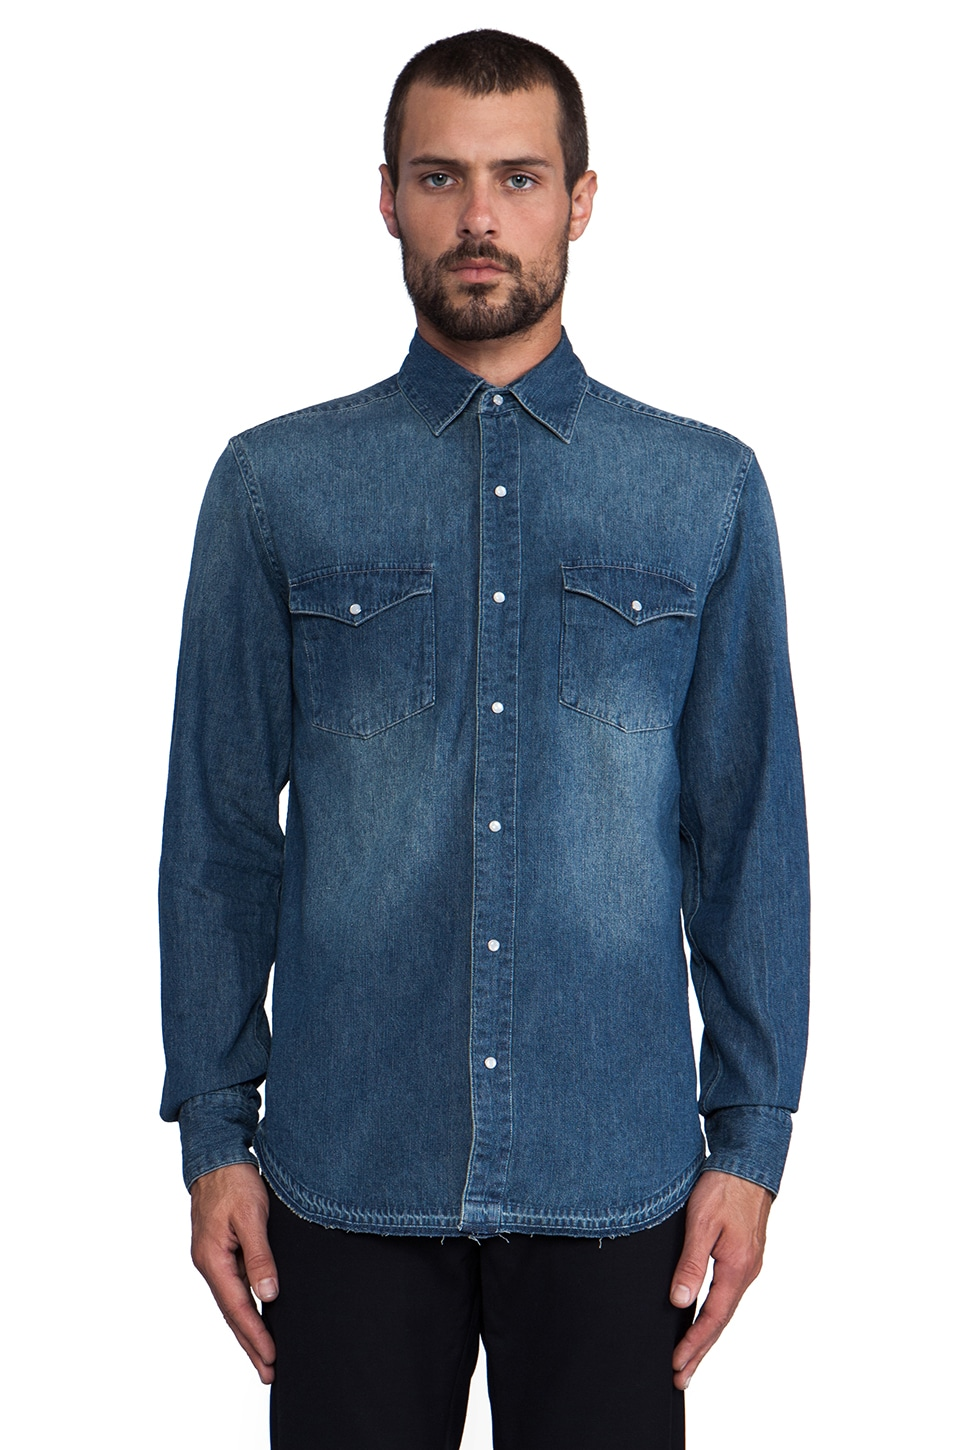 Shades of Grey by Micah Cohen Frayed Bottom Denim Shirt in Vintage Blue